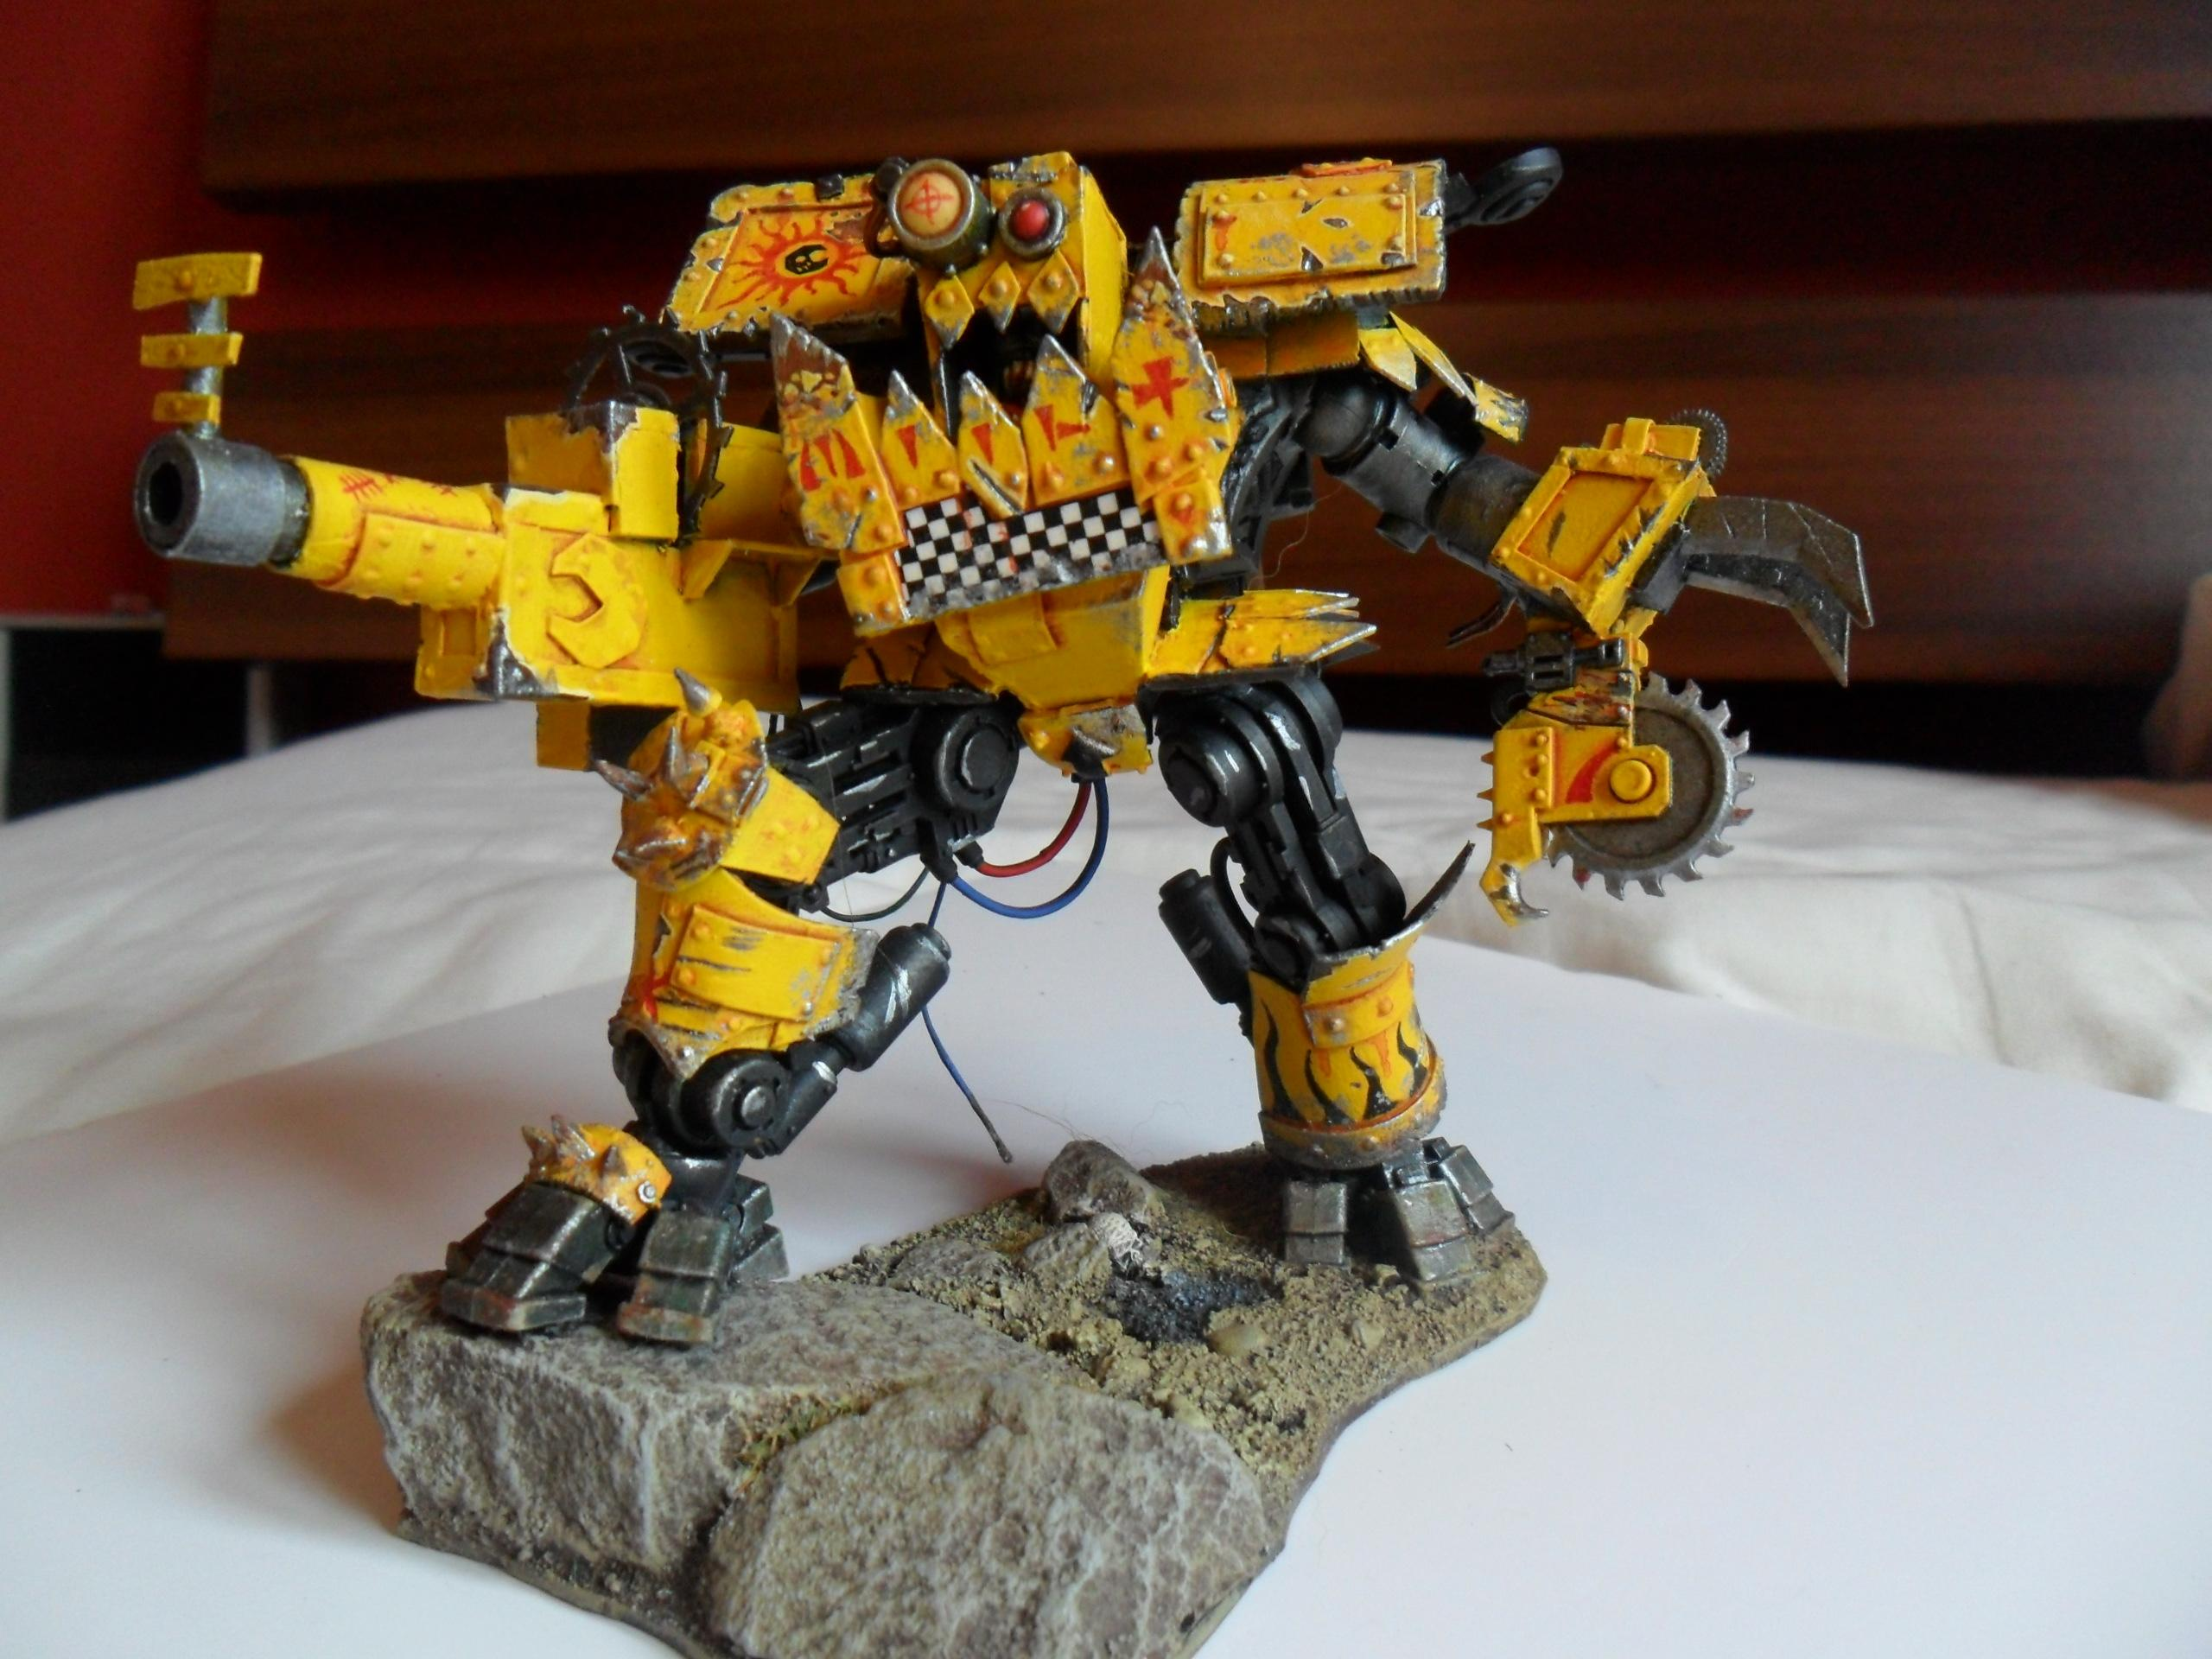 Badmoons, Deff Dread, Looted Riptide, Orks, Warhammer 40,000, Yellow